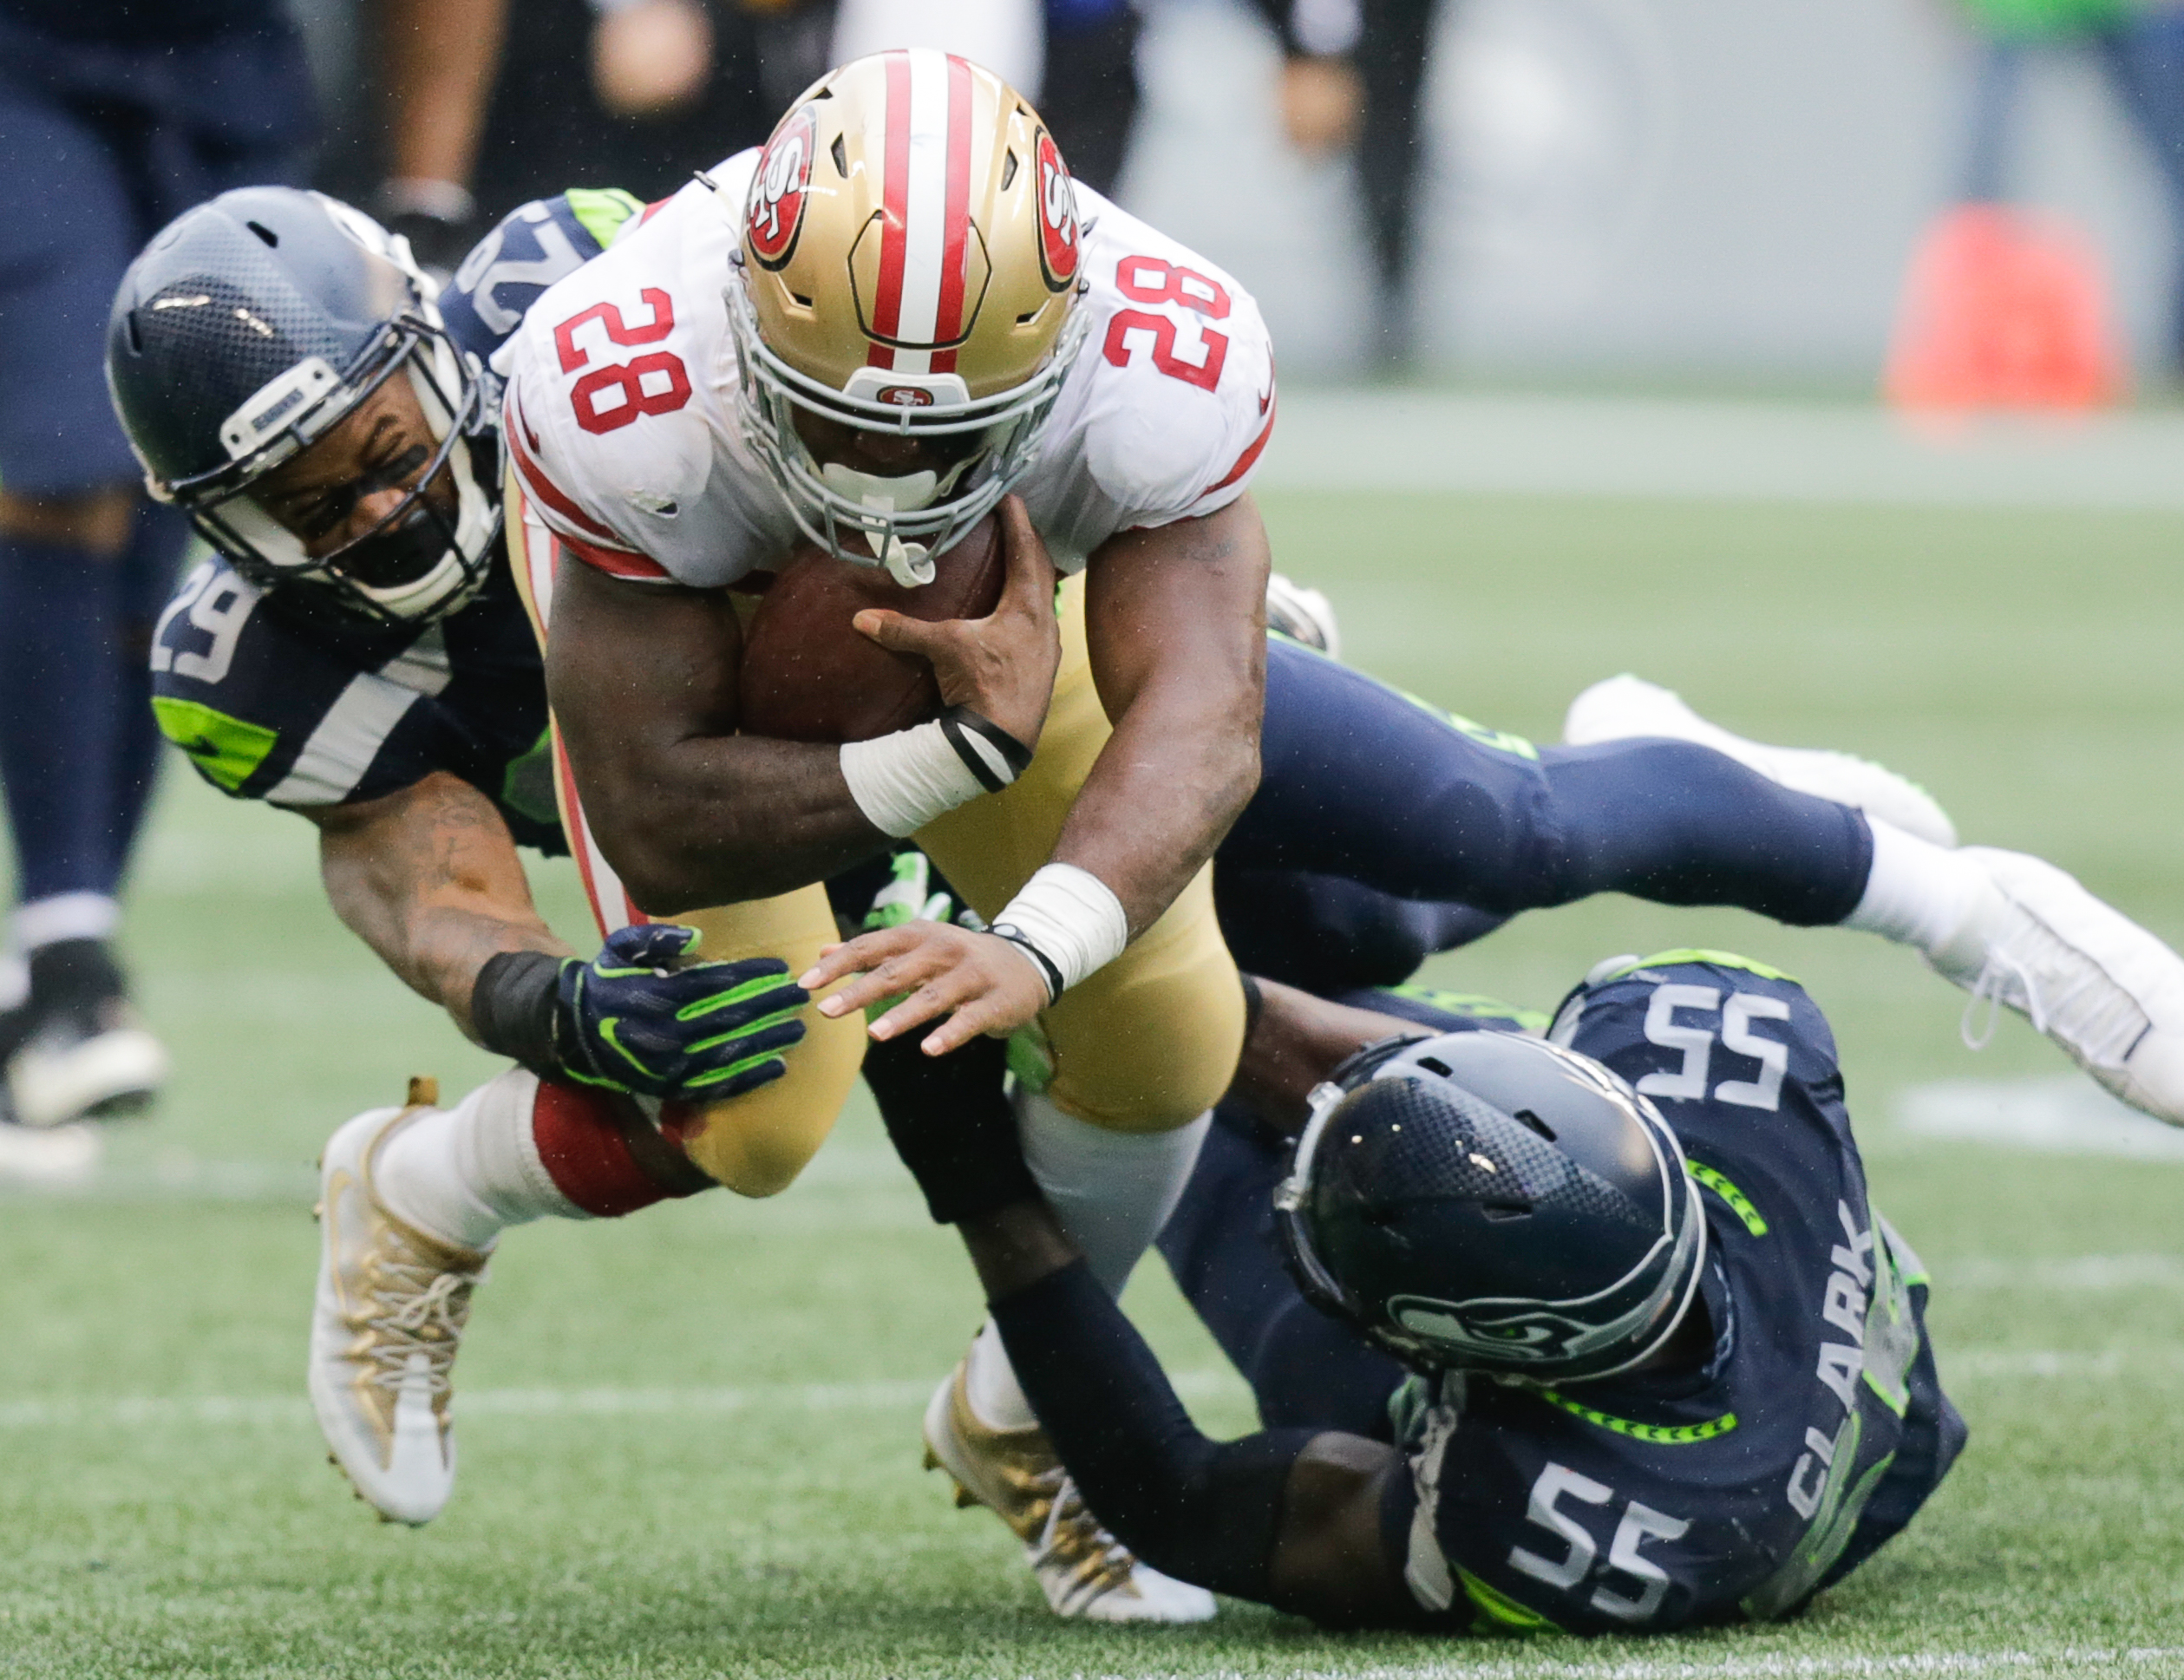 SEATTLE WA- SEPTEMBER 17 Running back Carlos Hyde #28 of the San Francisco 49ers is taken down by free safety Earl Thomas #29 of the Seattle Seahawks and defensive end Frank Clark #55 during the second half of the game at Century Link Field on September